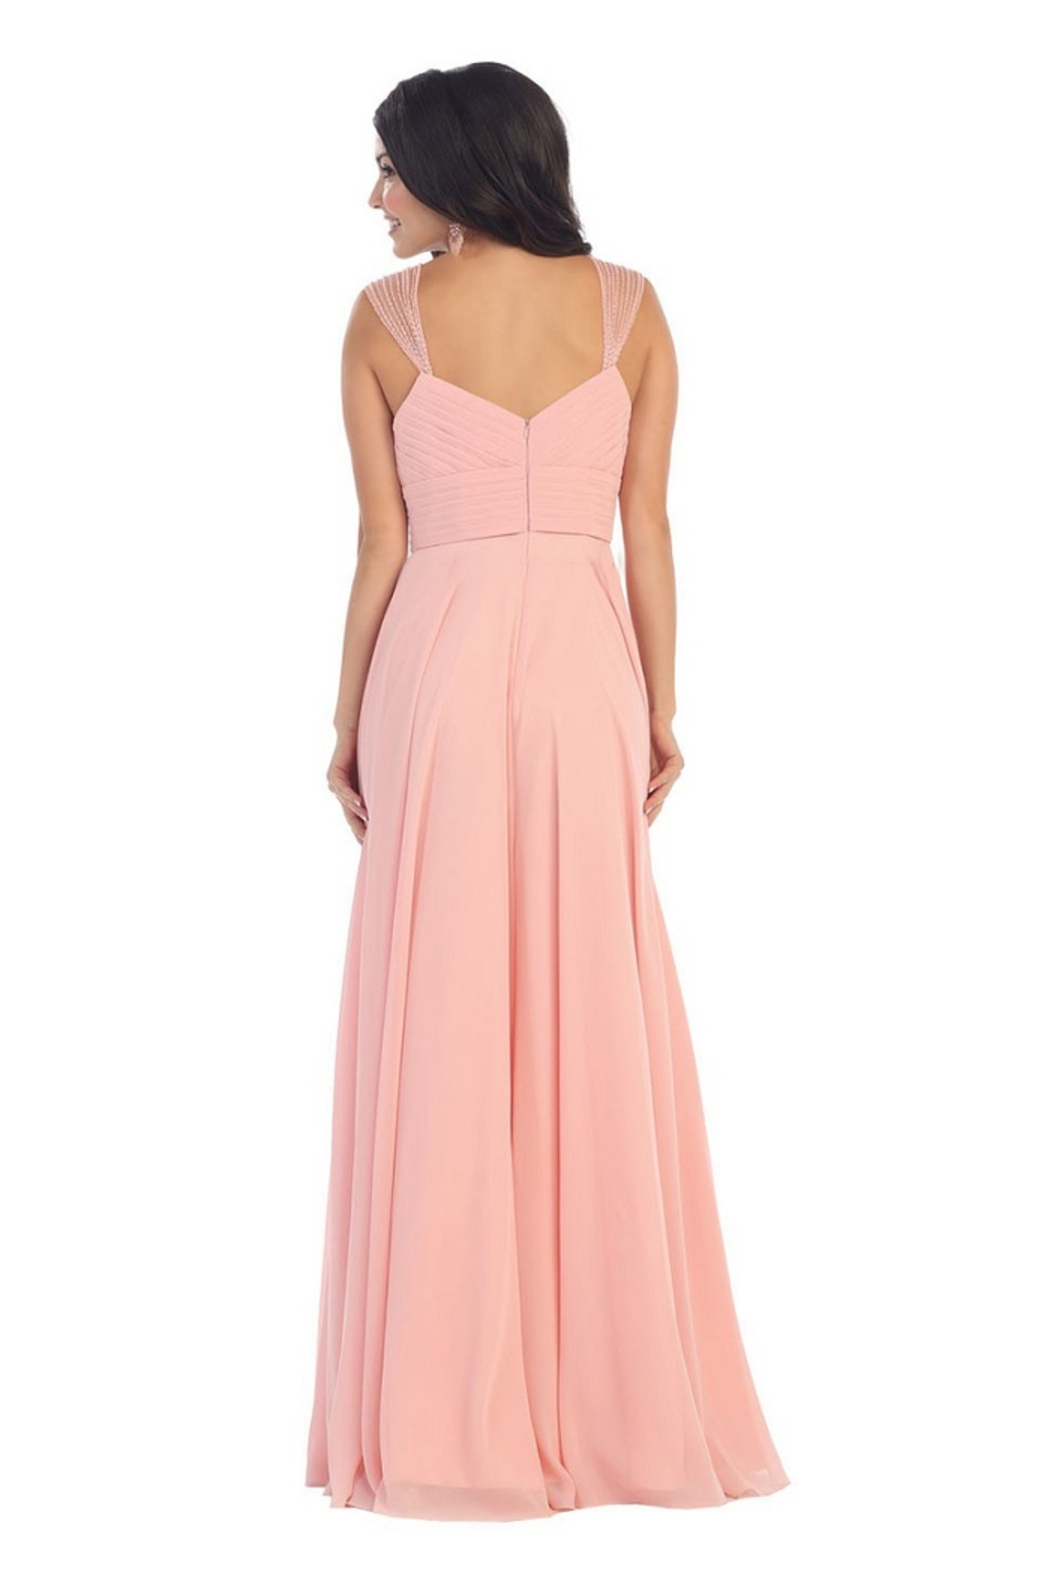 May Queen  Blush Chiffon Pleated Long Formal Dress - Front Full Image